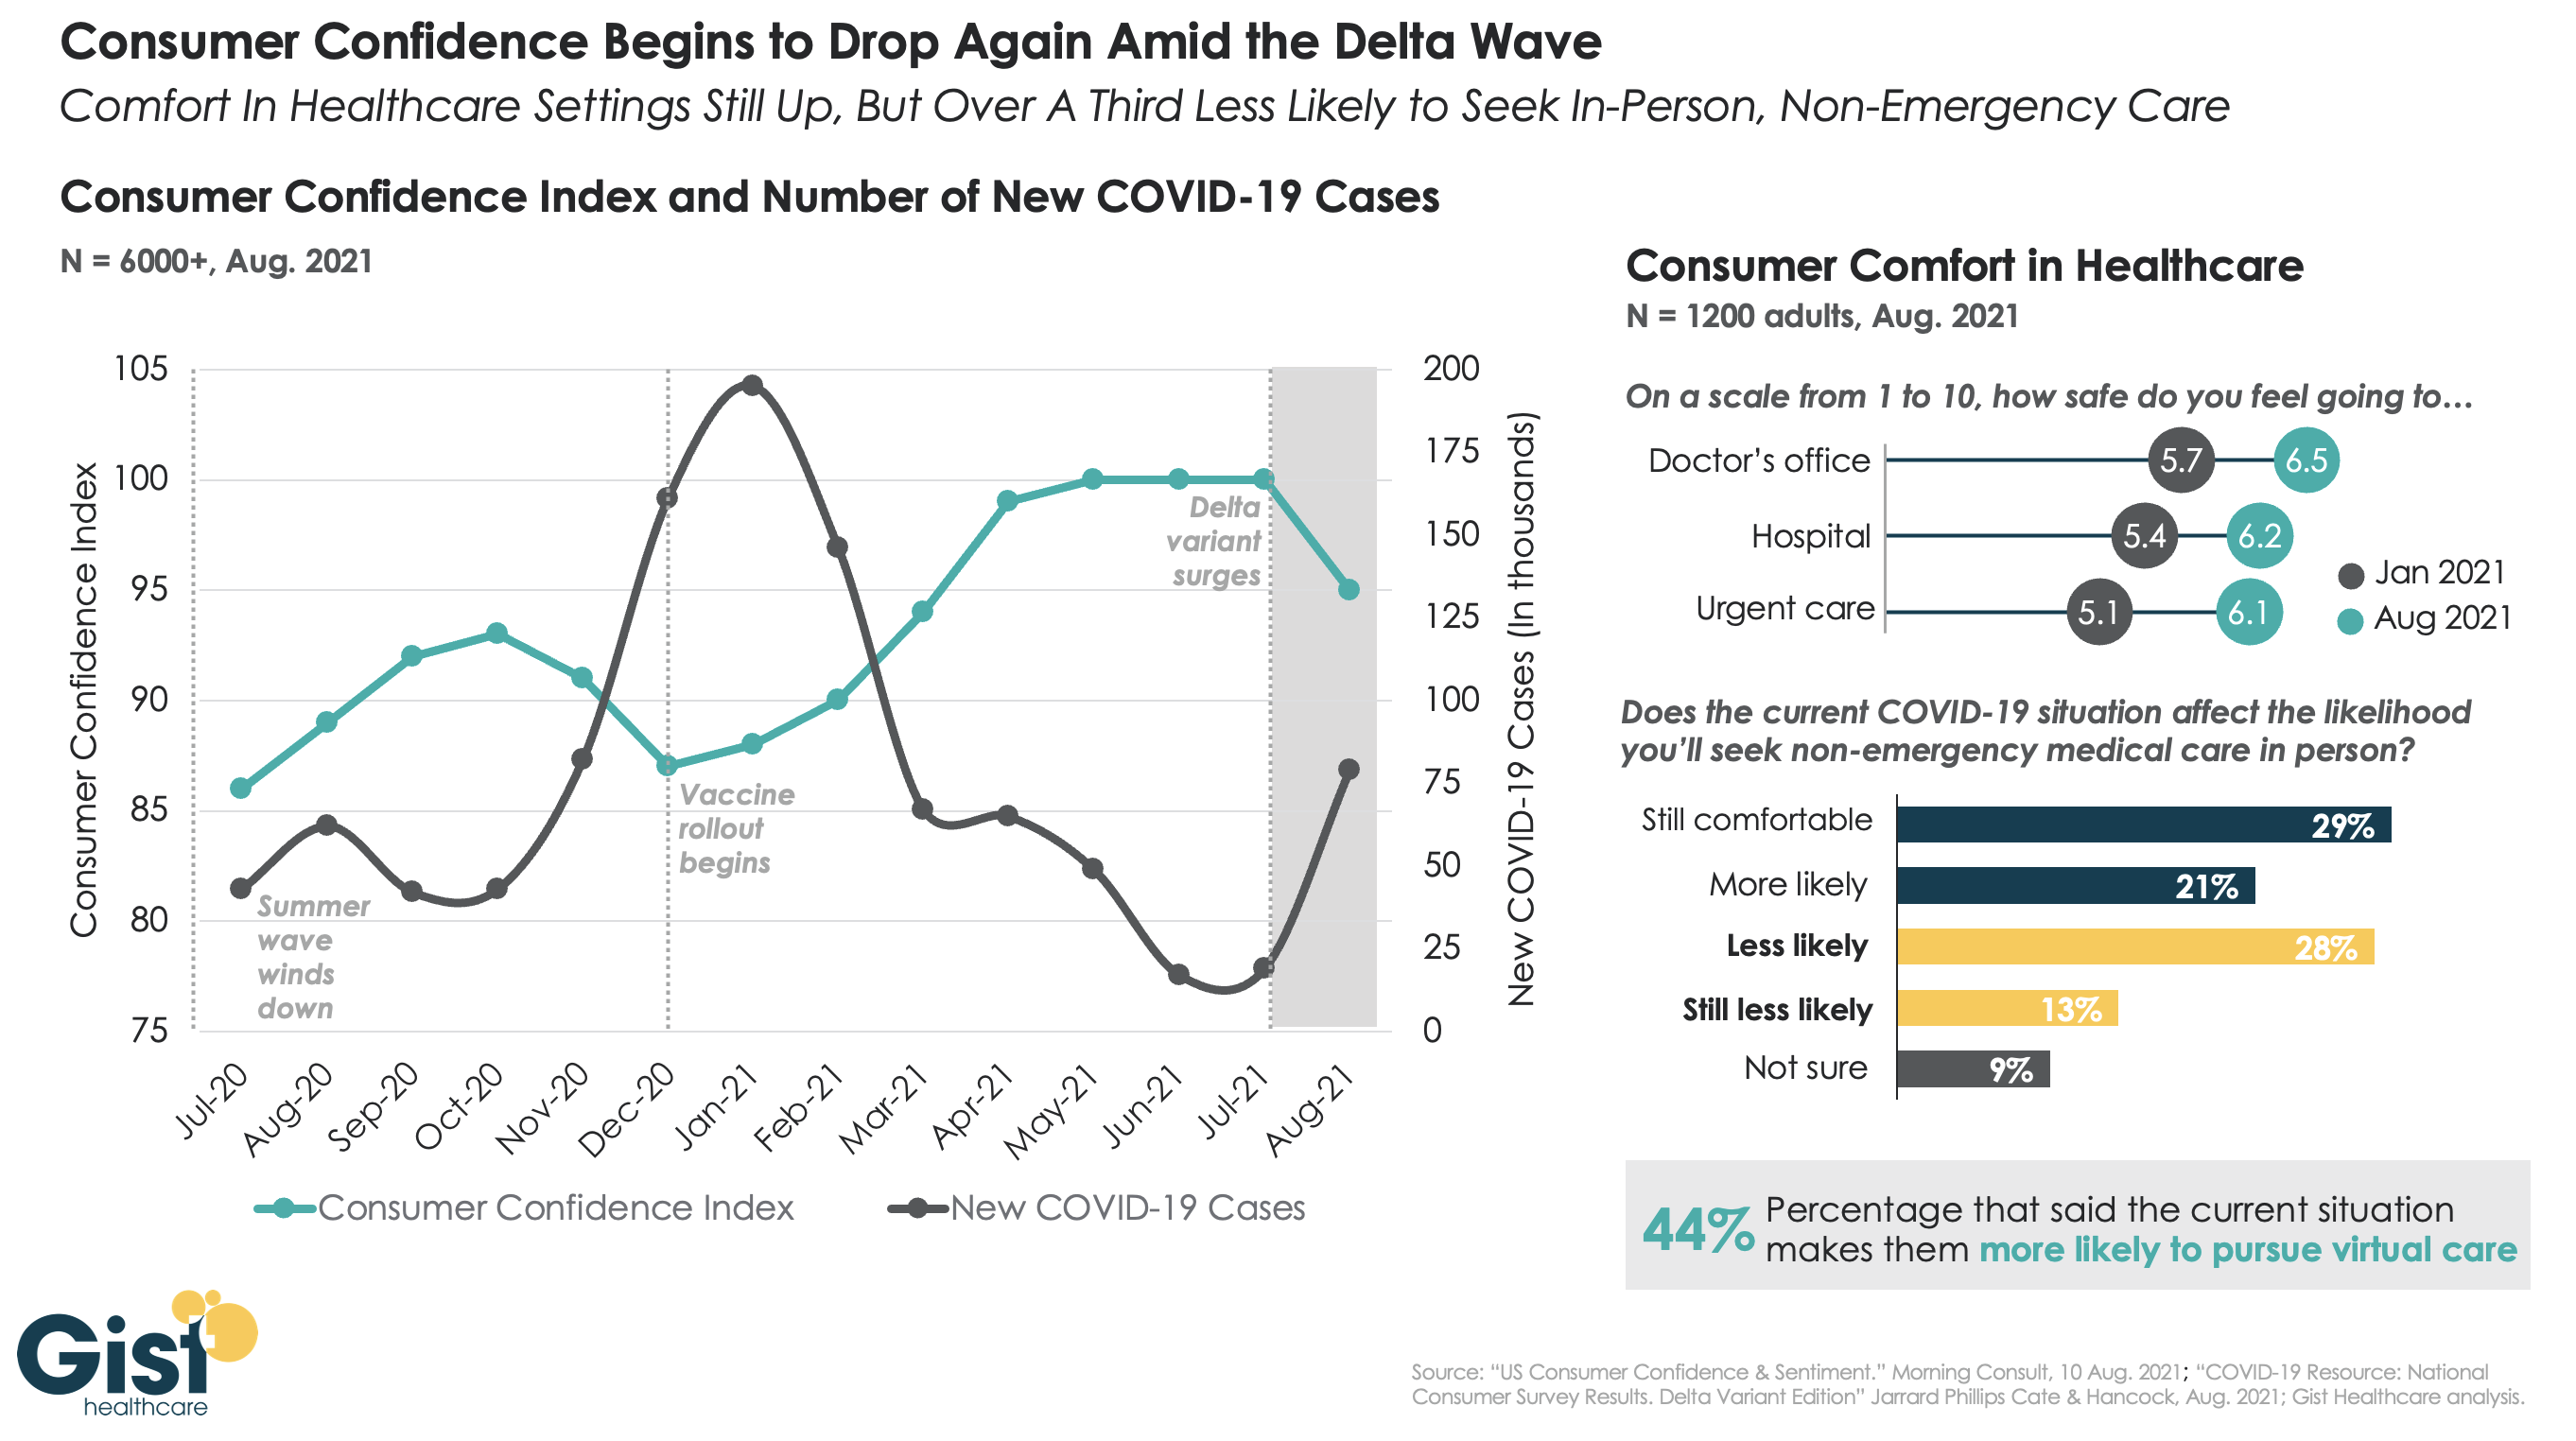 consumer confidence dropping